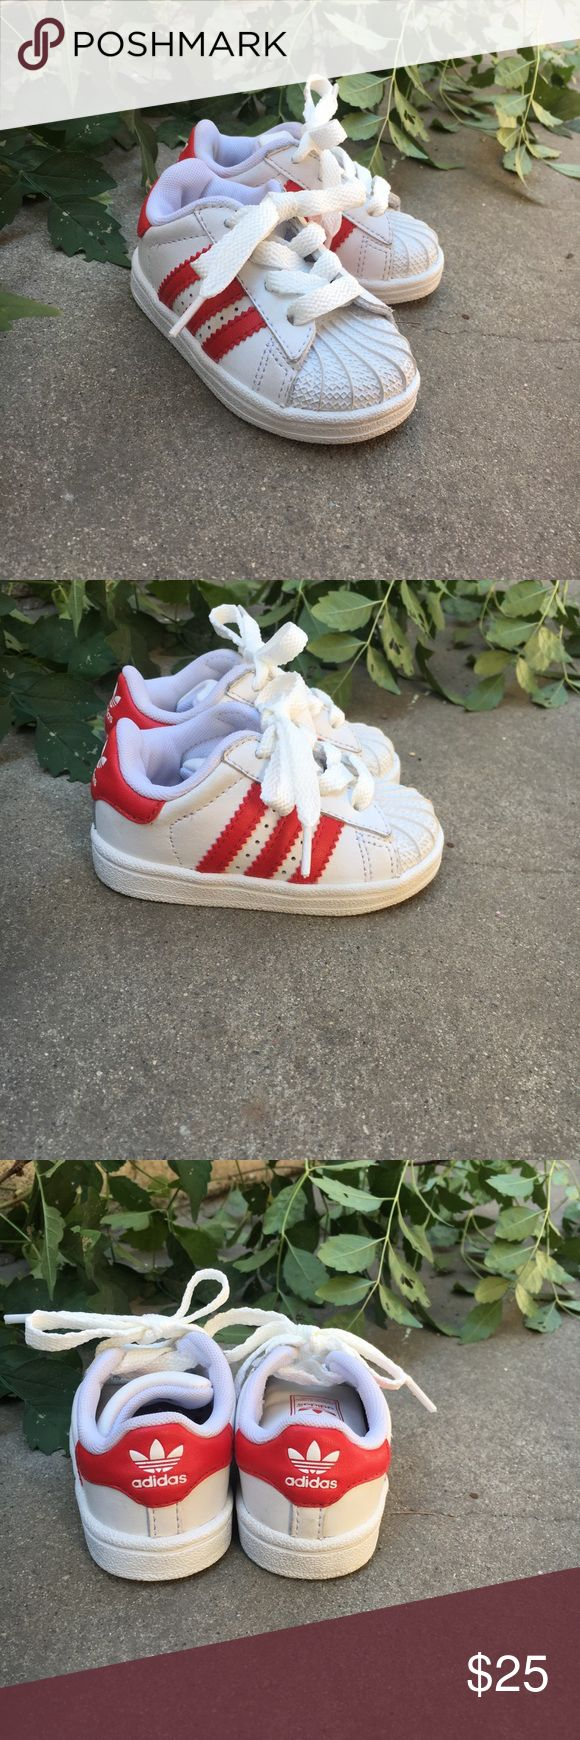 Adidas Shell Top Sneakers Adidas shell top sneakers. White with red stripes. These shoes are in perfect condition. There are some little toe marks inside the shoes, but that is the extent of the wear that is on the shoes. adidas Shoes Sneakers